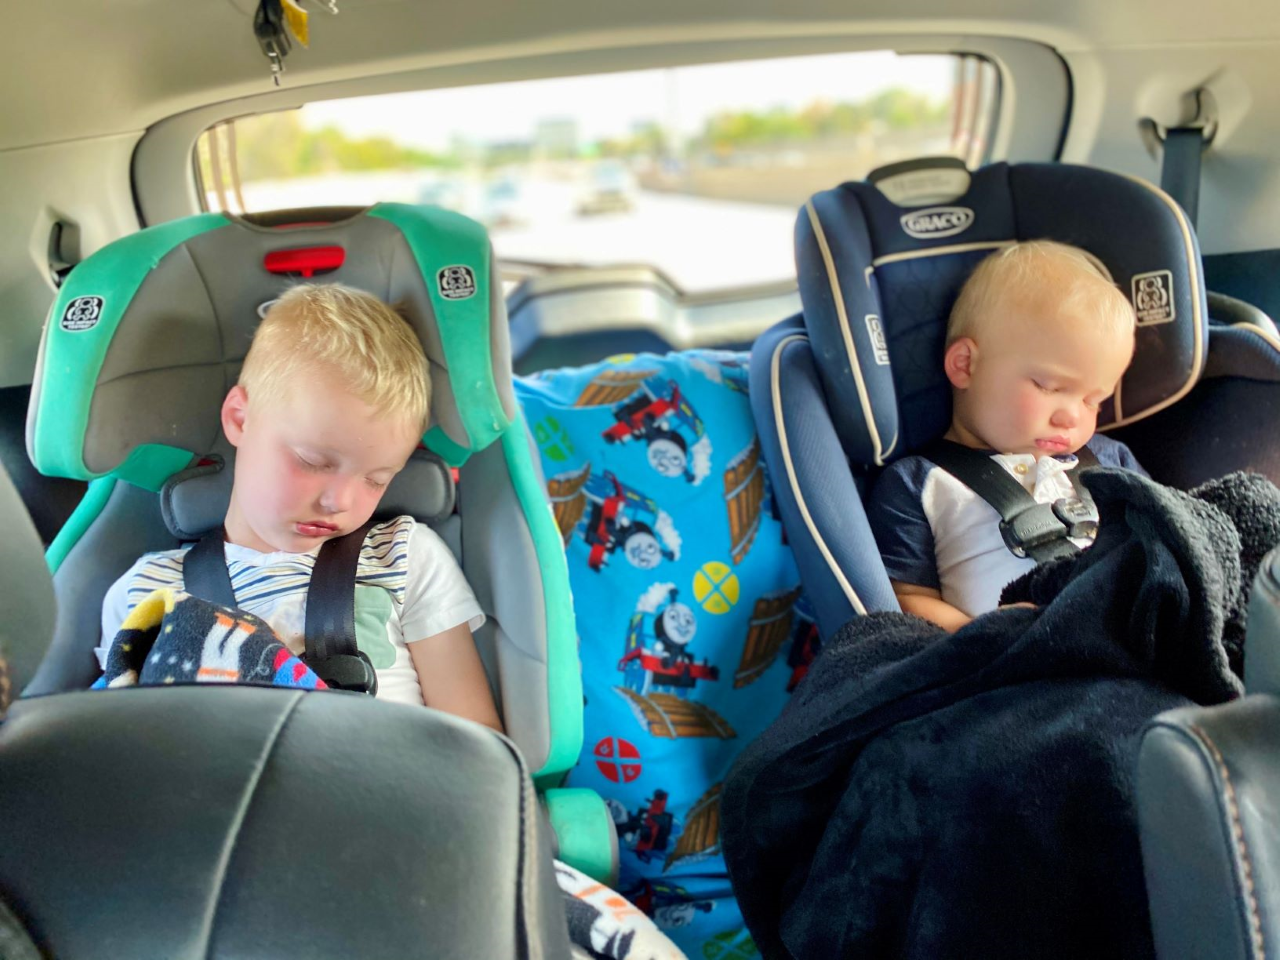 Brie and Baby Three: Traveling with littles